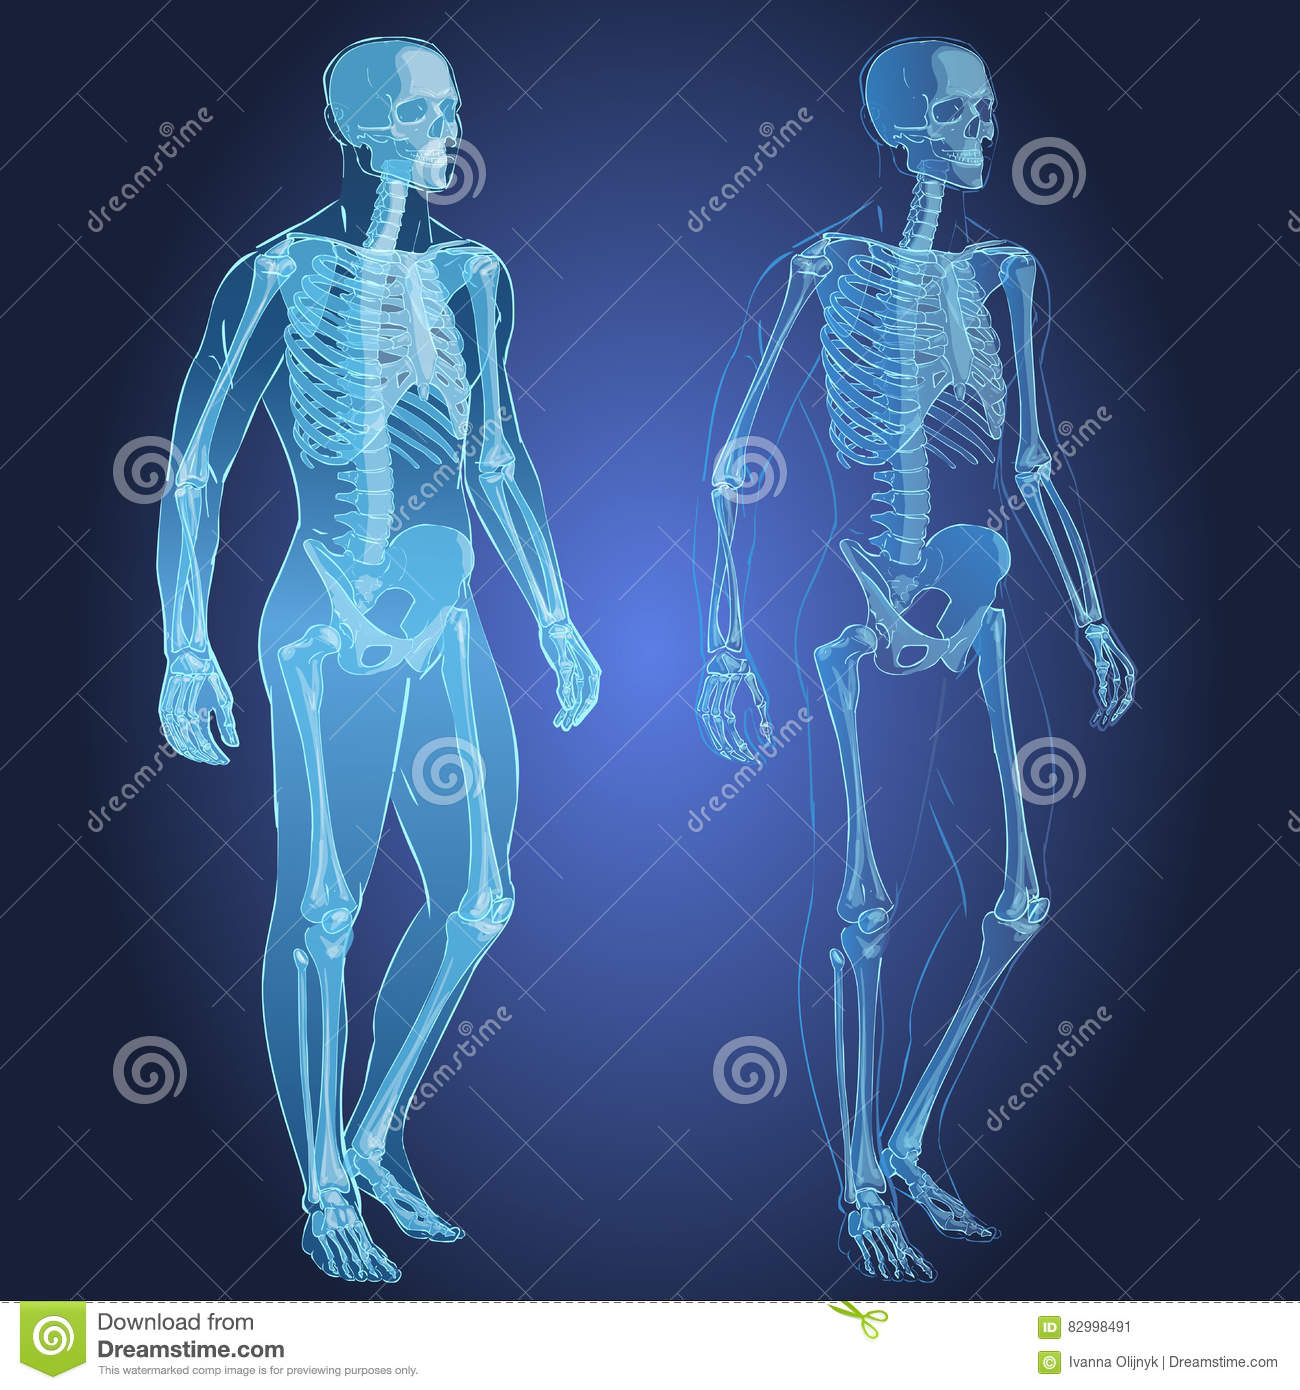 Human Body And Skeleton Stock Vector Illustration Of Physical